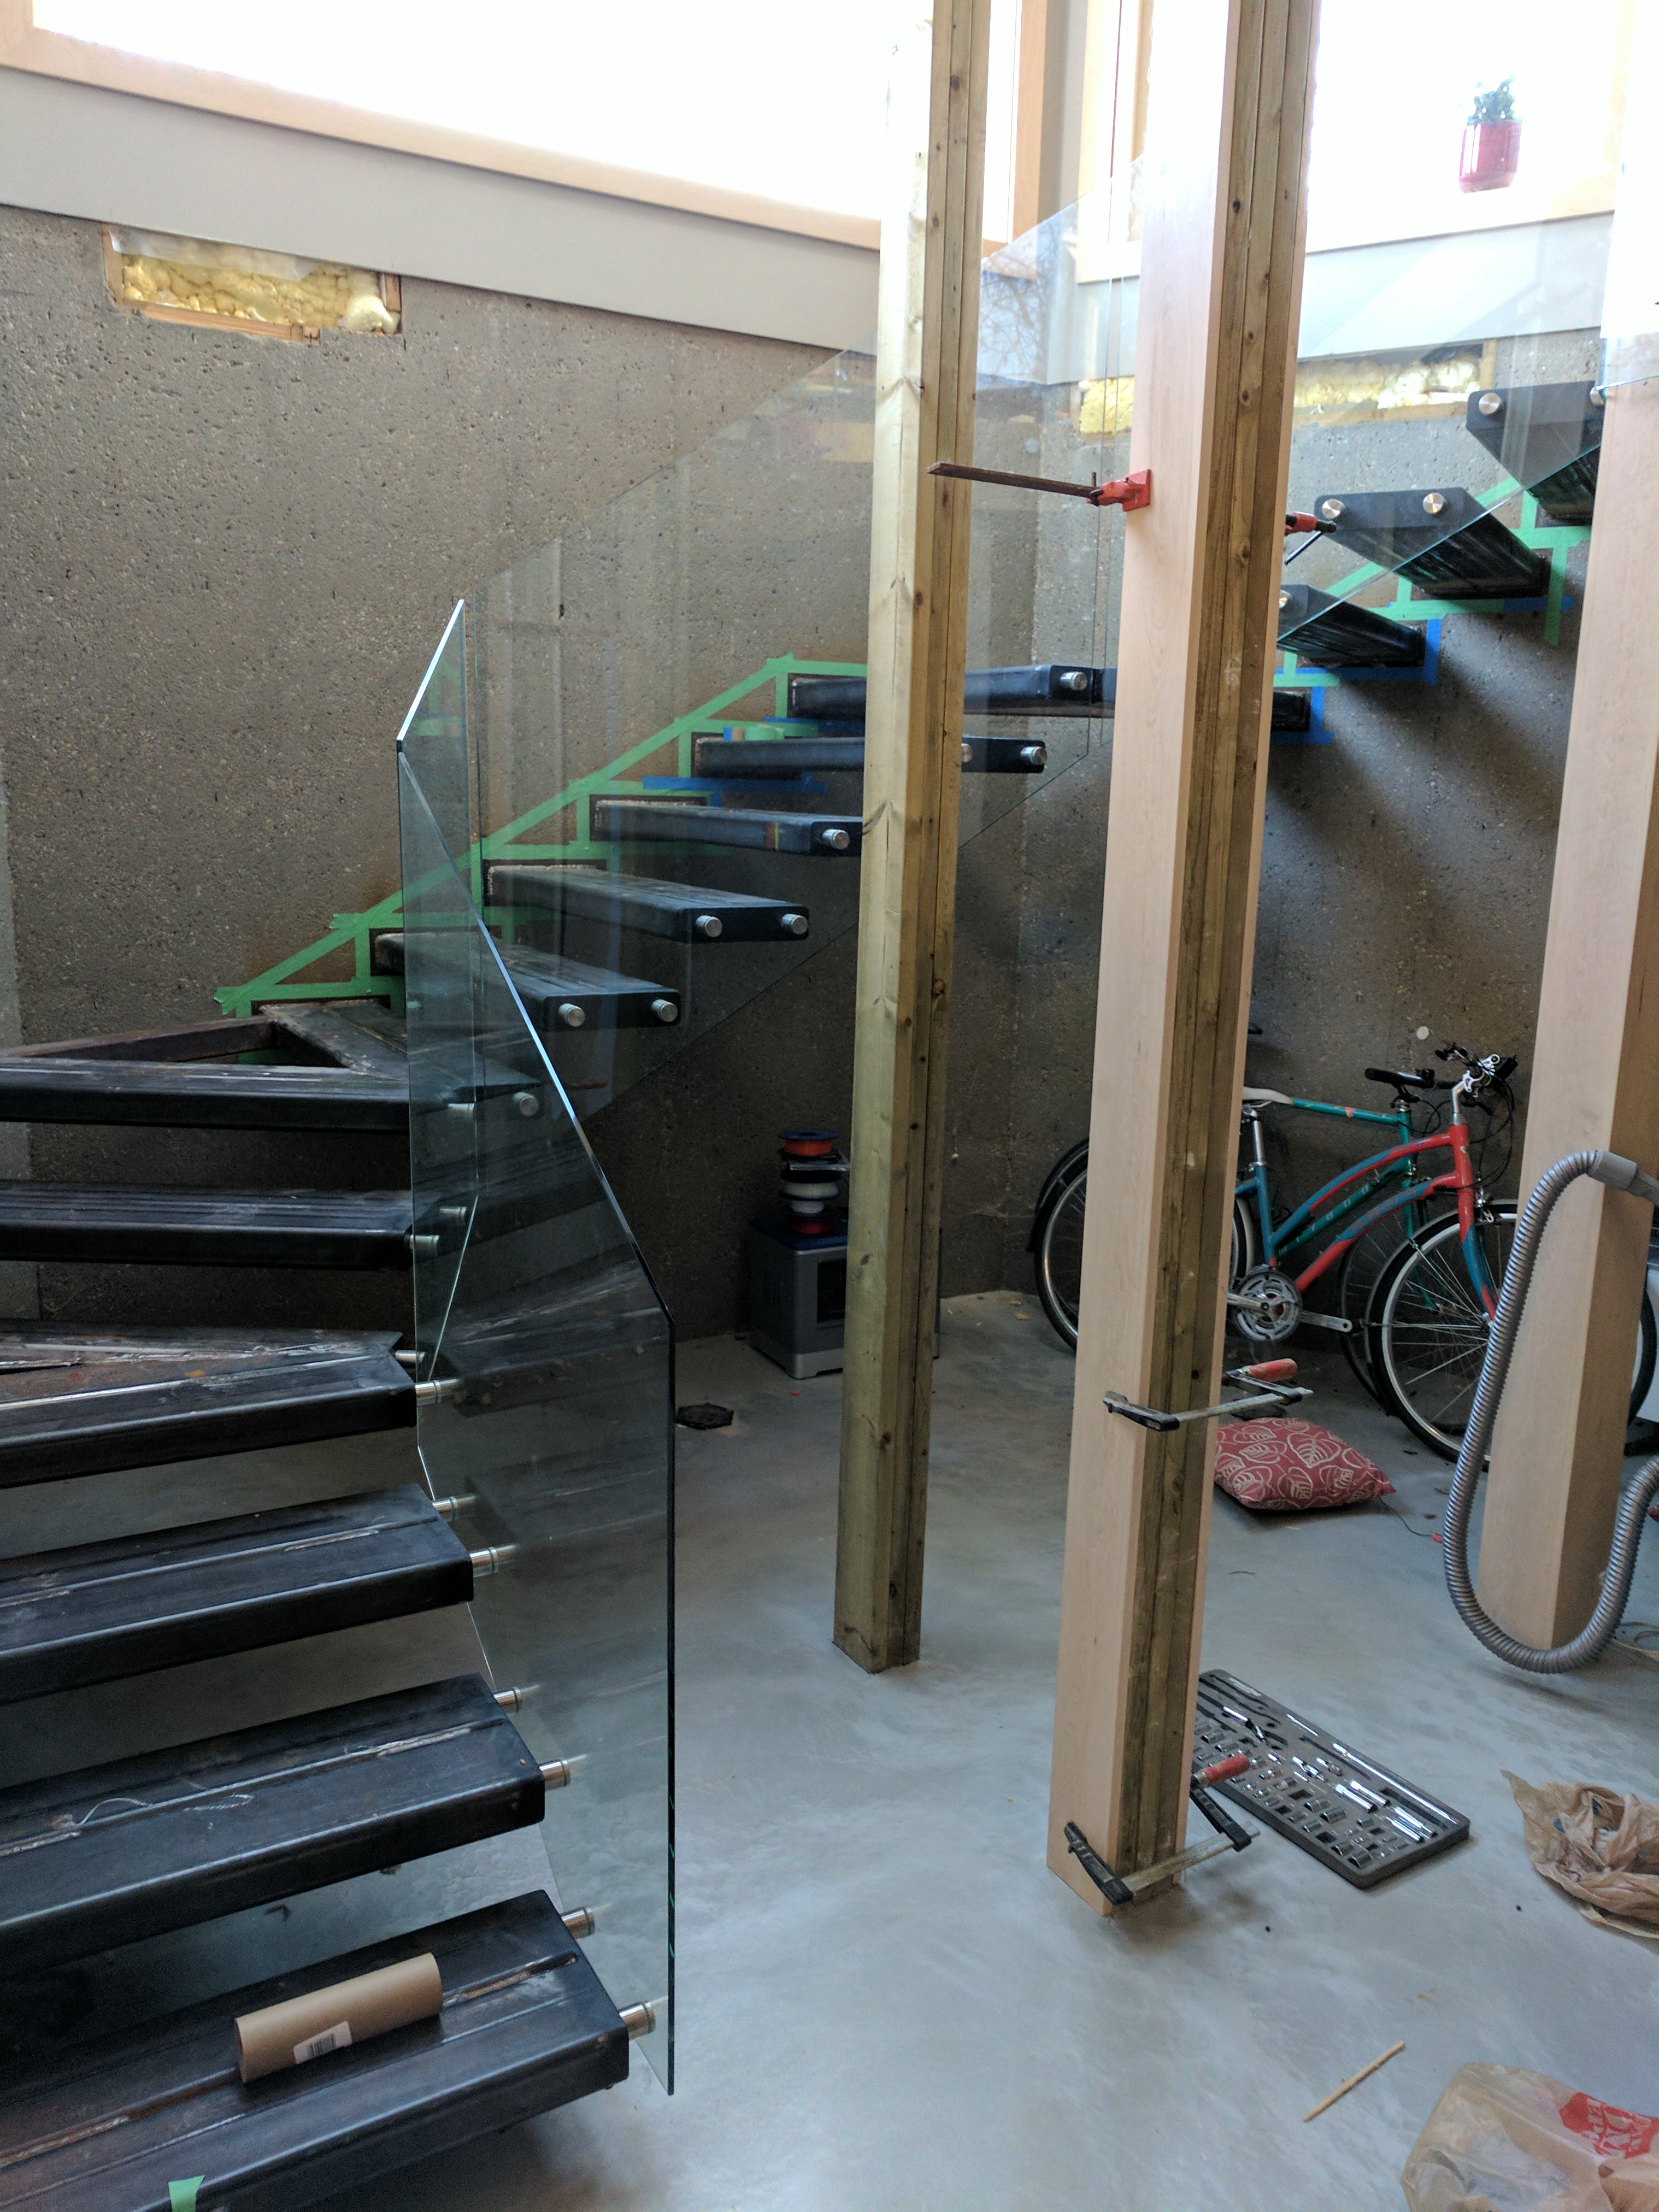 Basement cantilevered stairs under construction